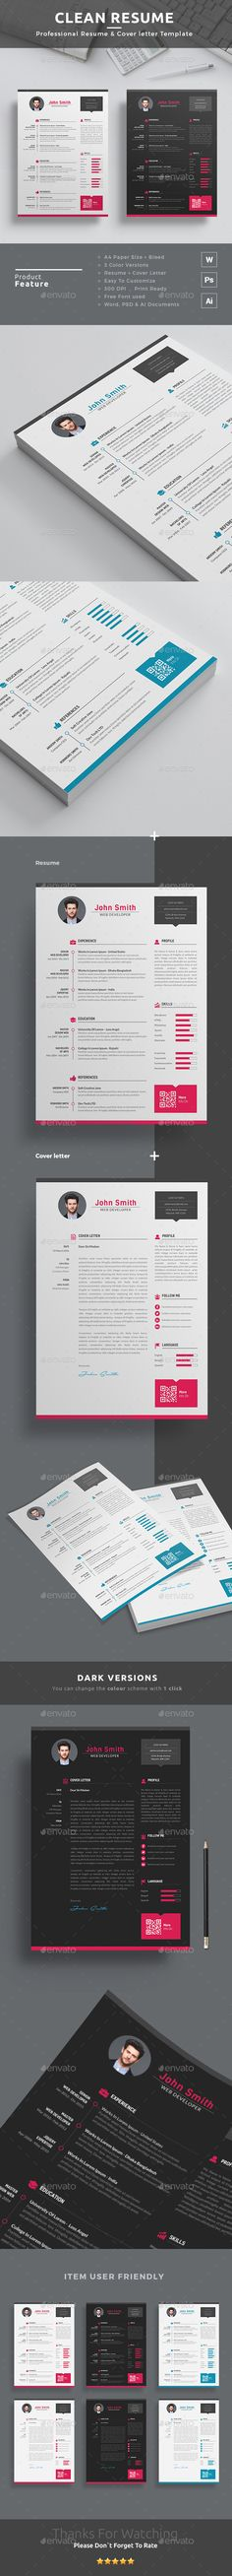 Resume \ Cover Letter Template v3 Resume cover letter template - free cover letter template downloads